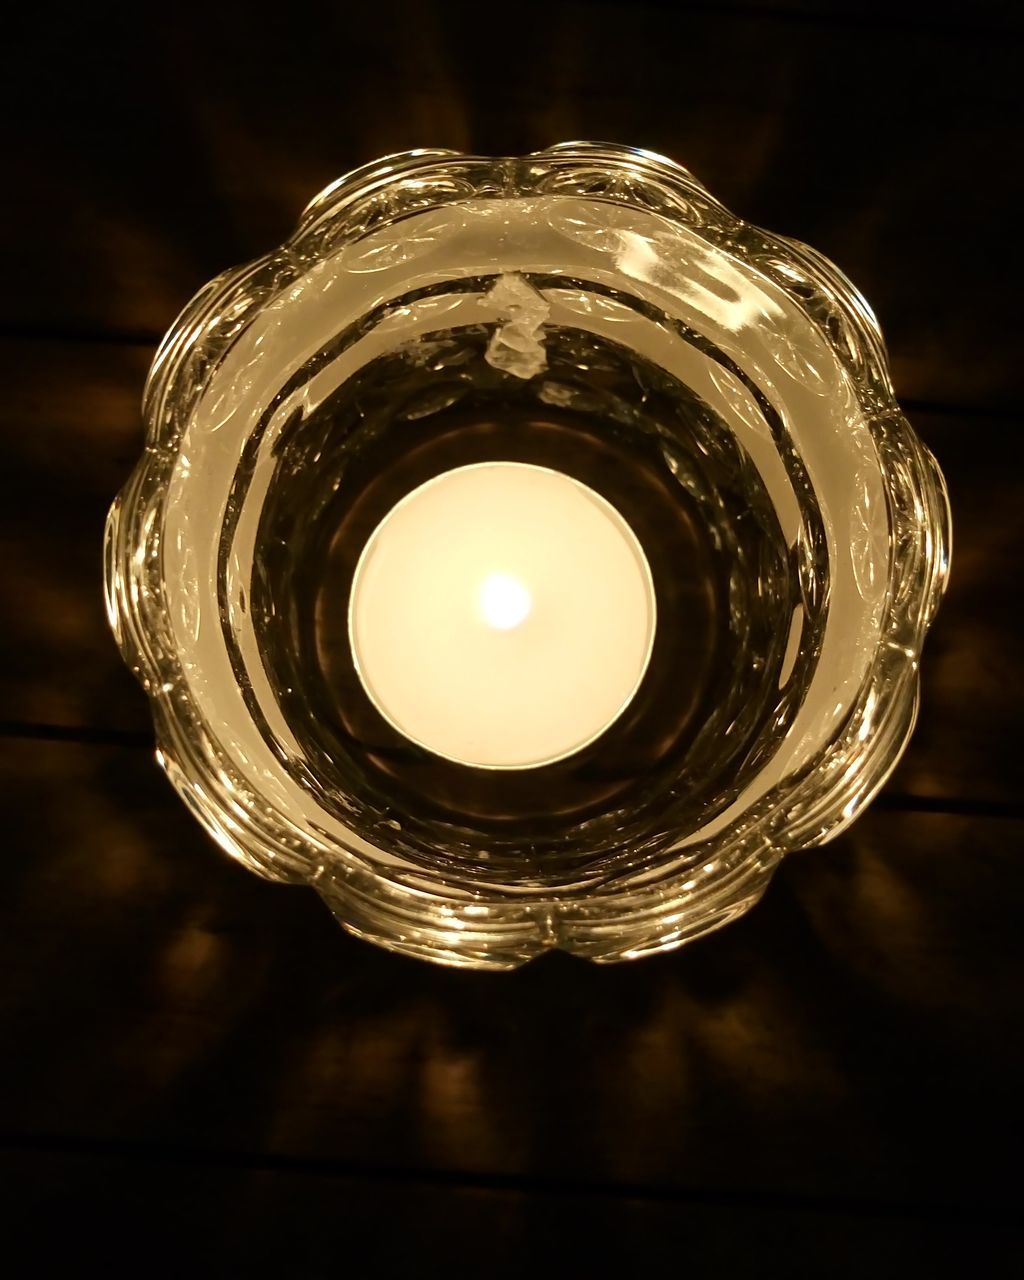 illuminated, lighting equipment, candle, tea light, glowing, no people, indoors, flame, close-up, light bulb, night, electricity, black background